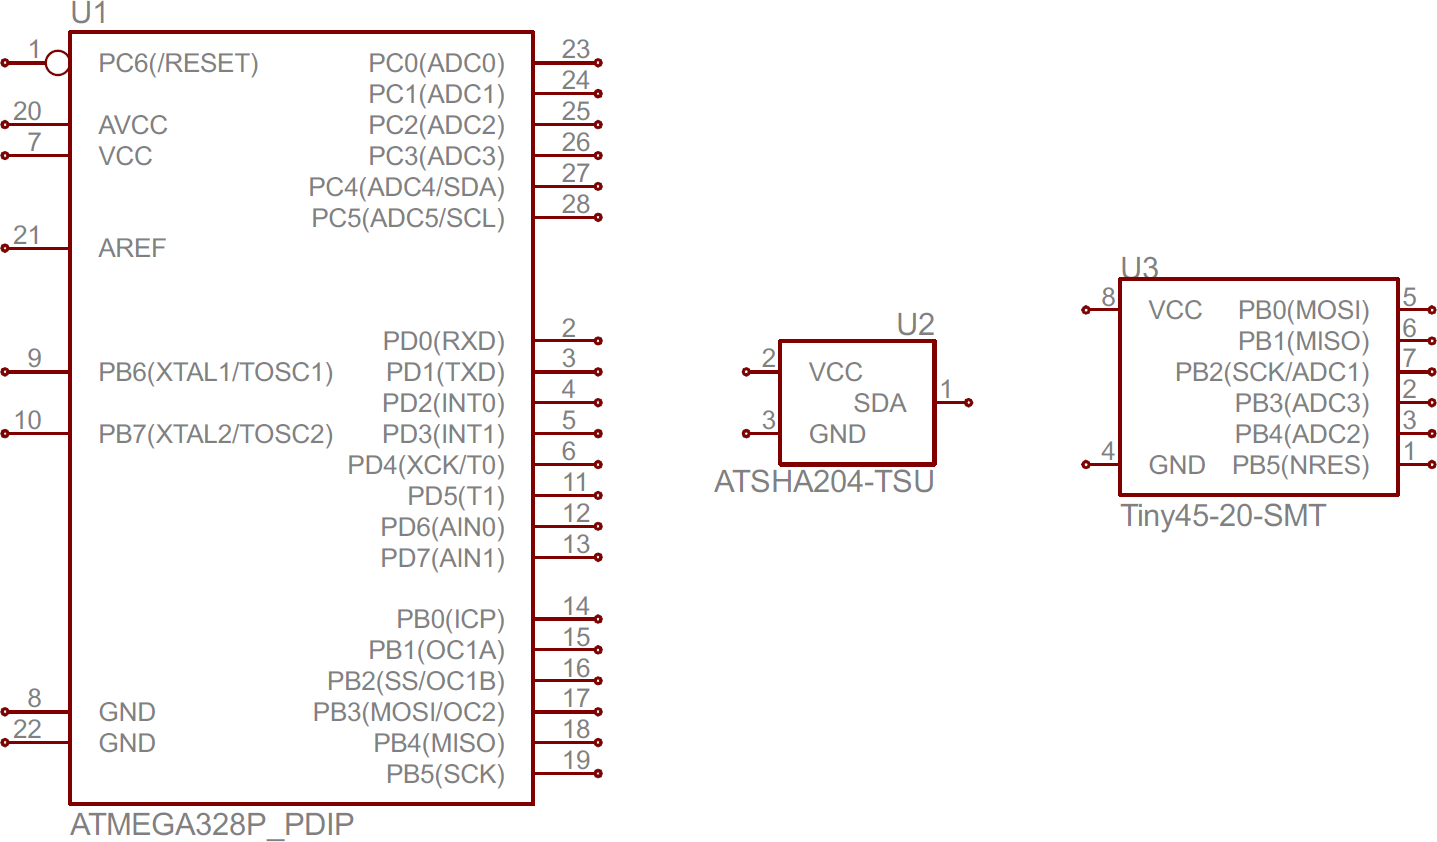 How To Read A Schematic Mp3 Player Circuit Diagram And Layout Modules Atmega328 Atsha204 Attiny45 Ic Symbols